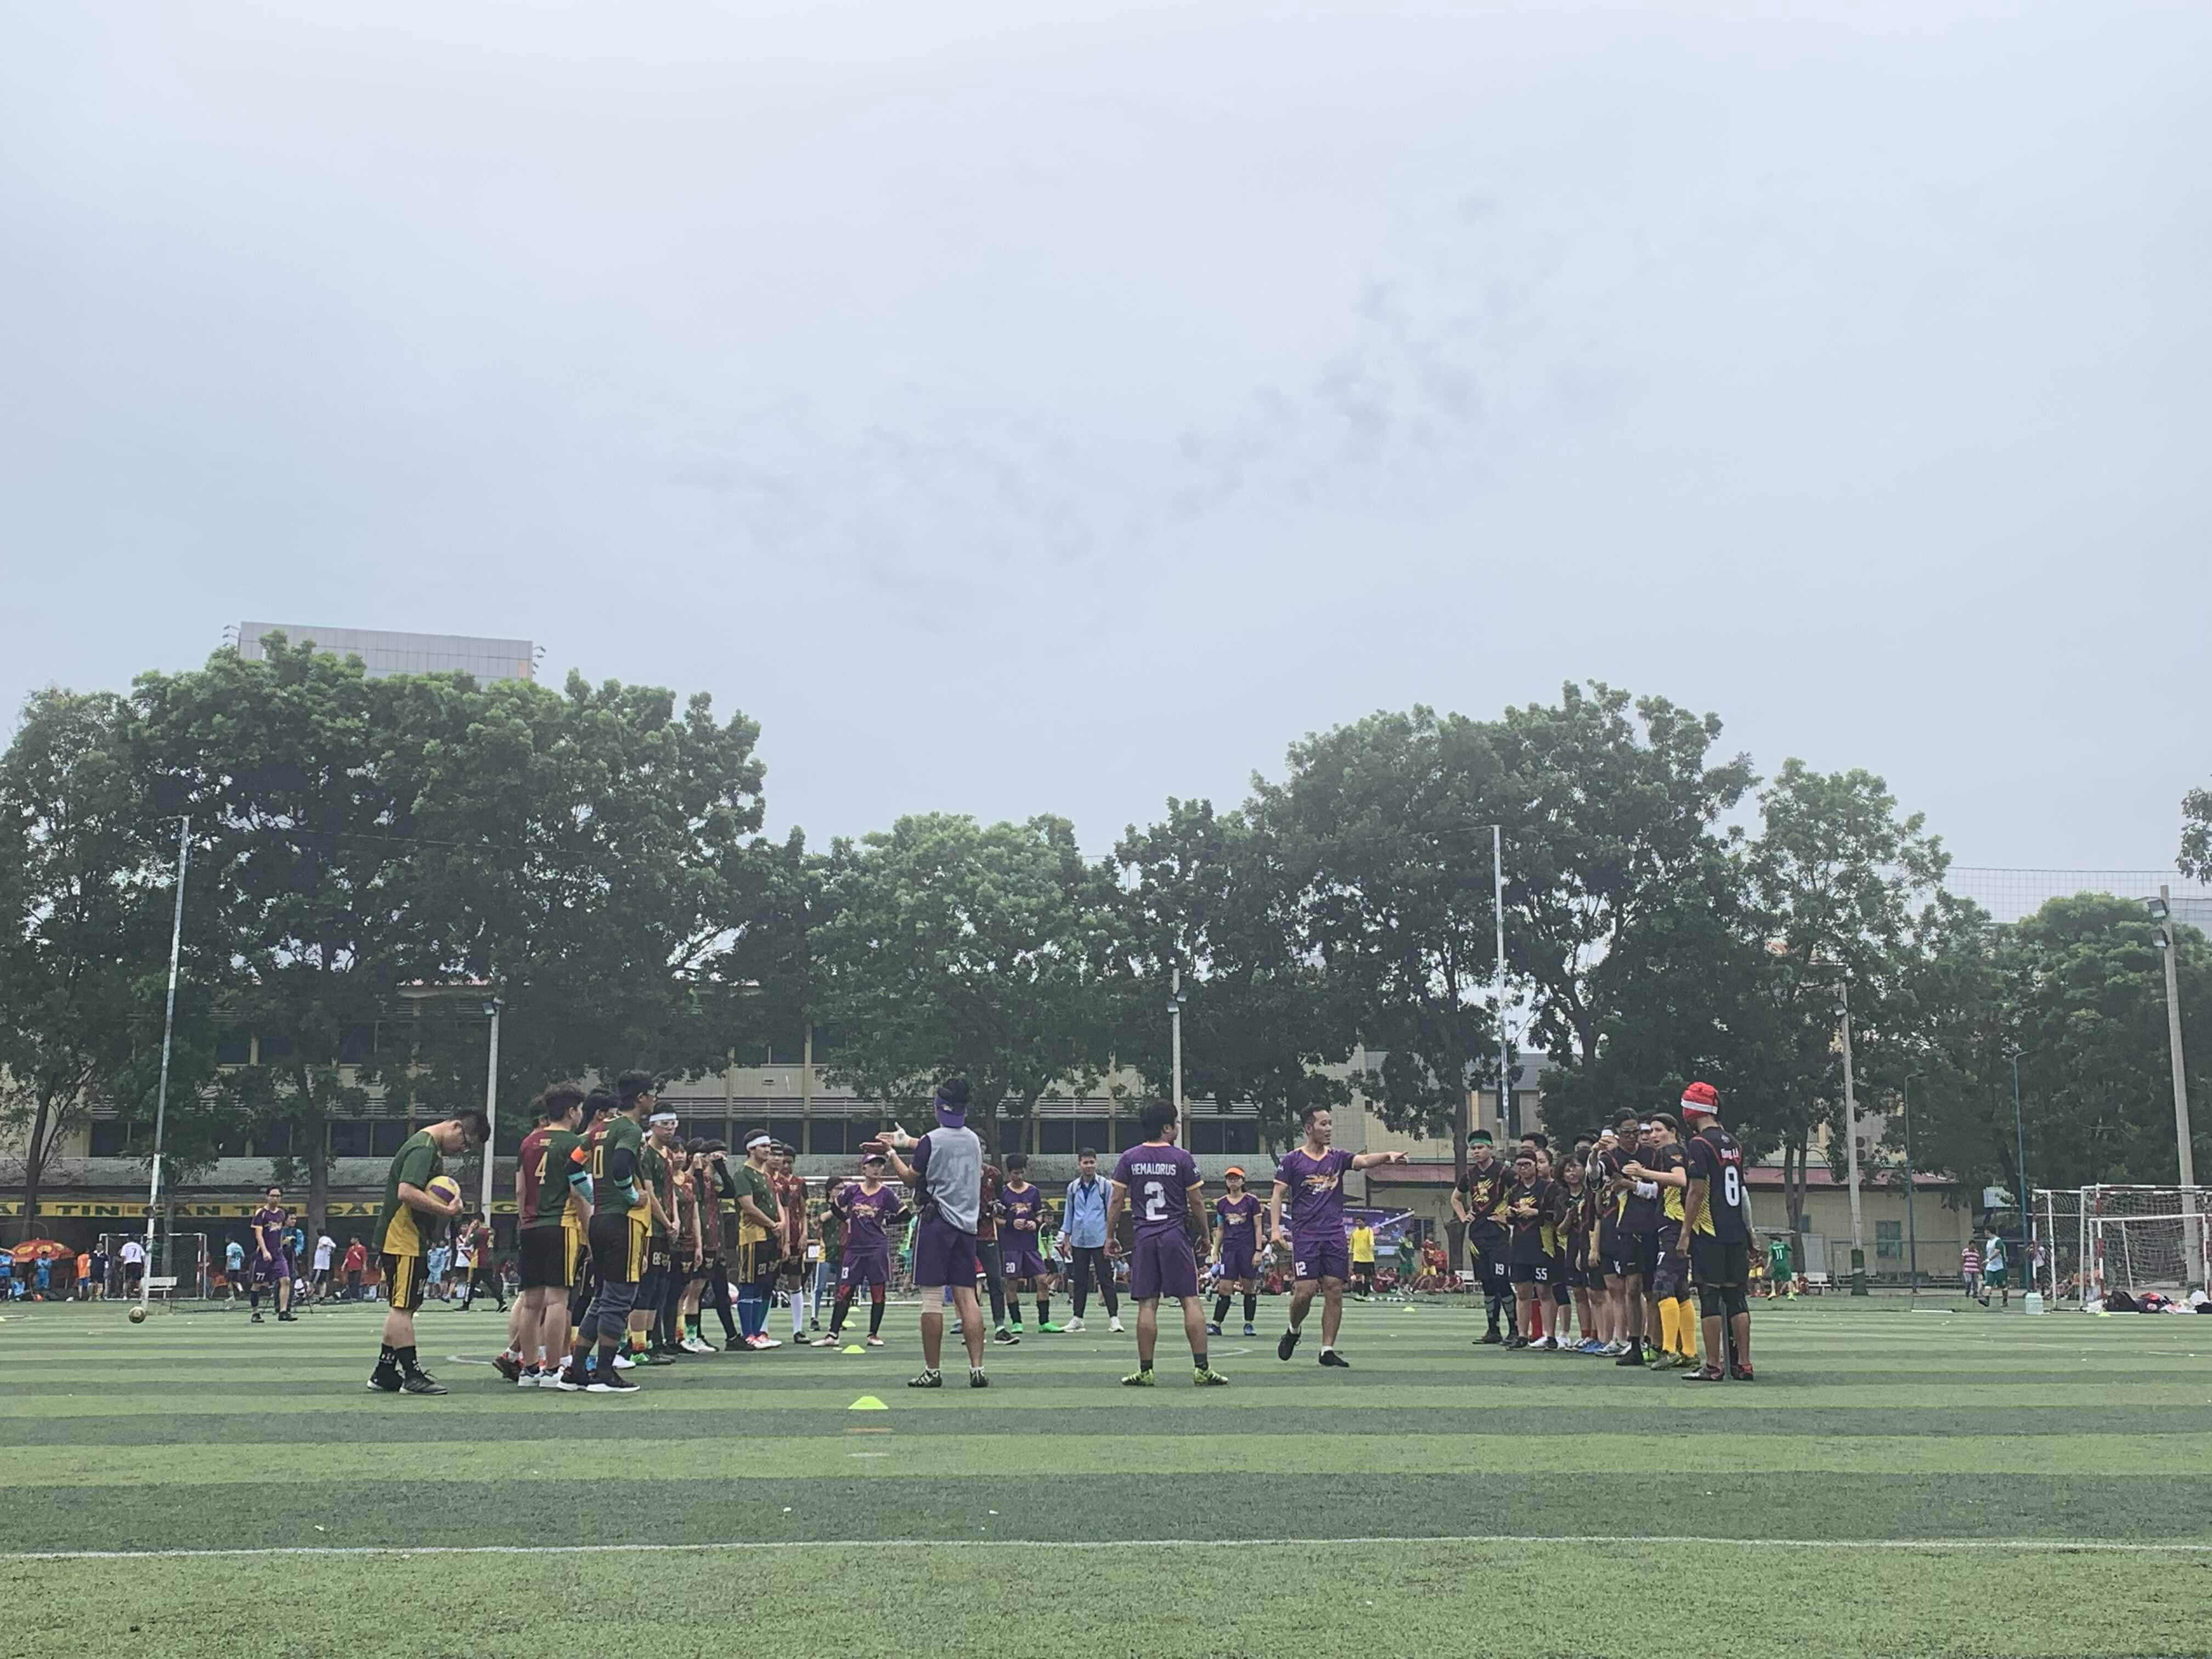 Two teams greet before a match in the maiden Vietnam Quidditch Cup organized by the Vietnam Quidditch Association  in Tan Binh District, Ho Chi Minh City, November 10, 2019 in this provided photo